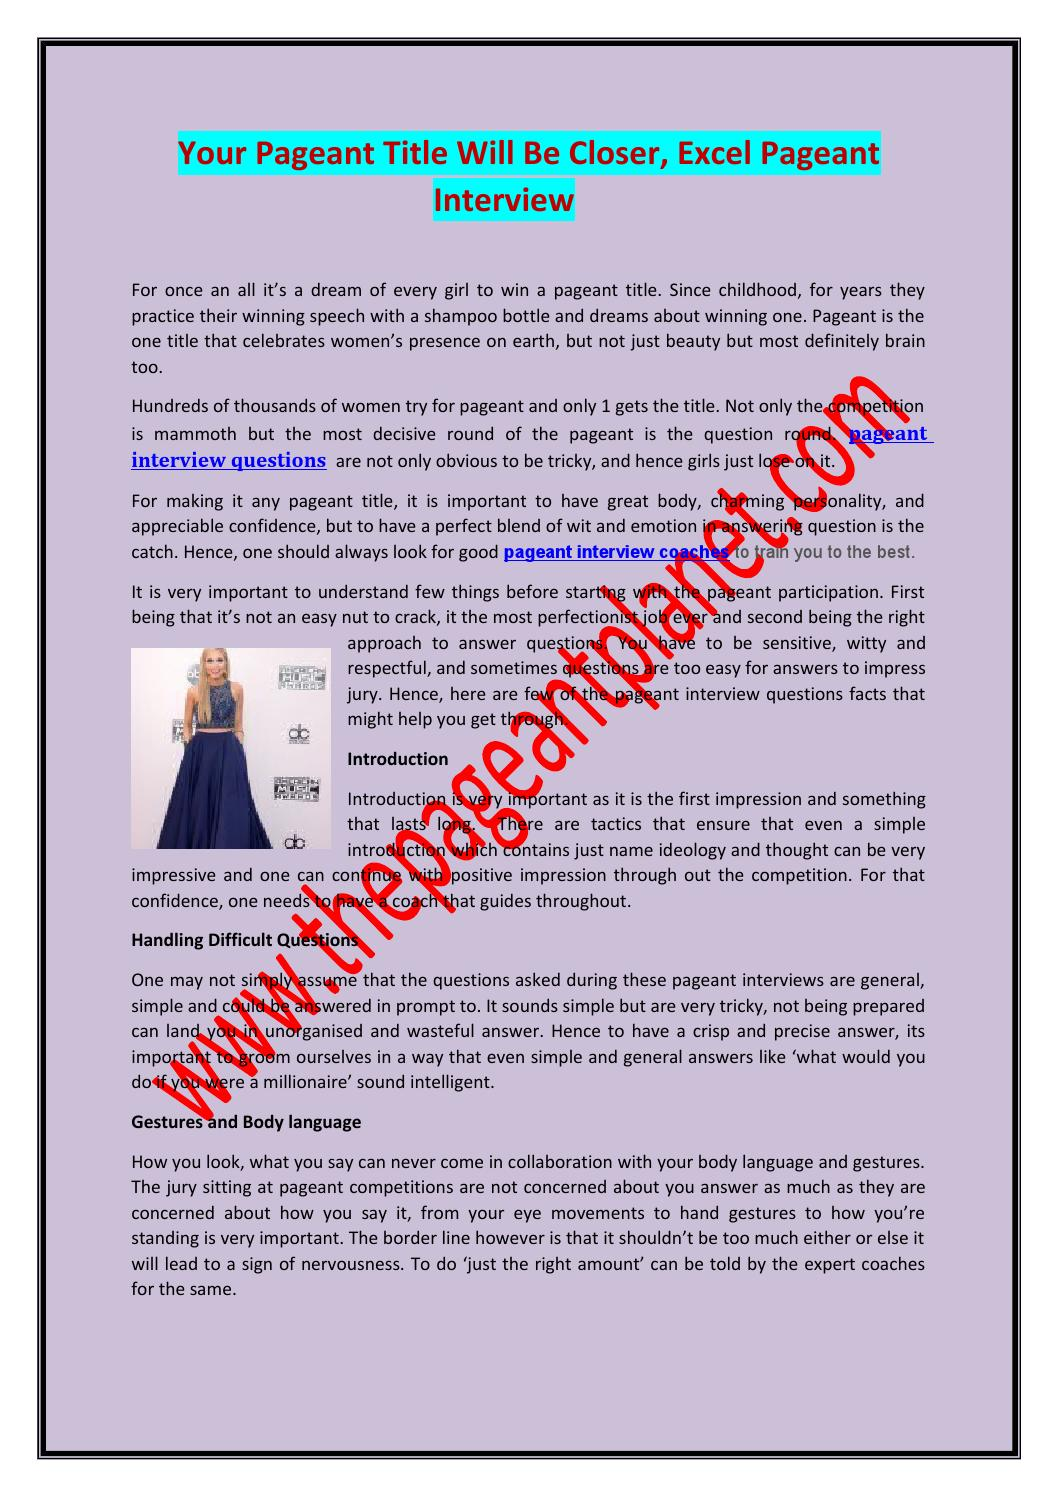 Witty Questions For Beauty Pageants : witty, questions, beauty, pageants, Pageant, Interview, Coaches, Thepageantplanet, Issuu